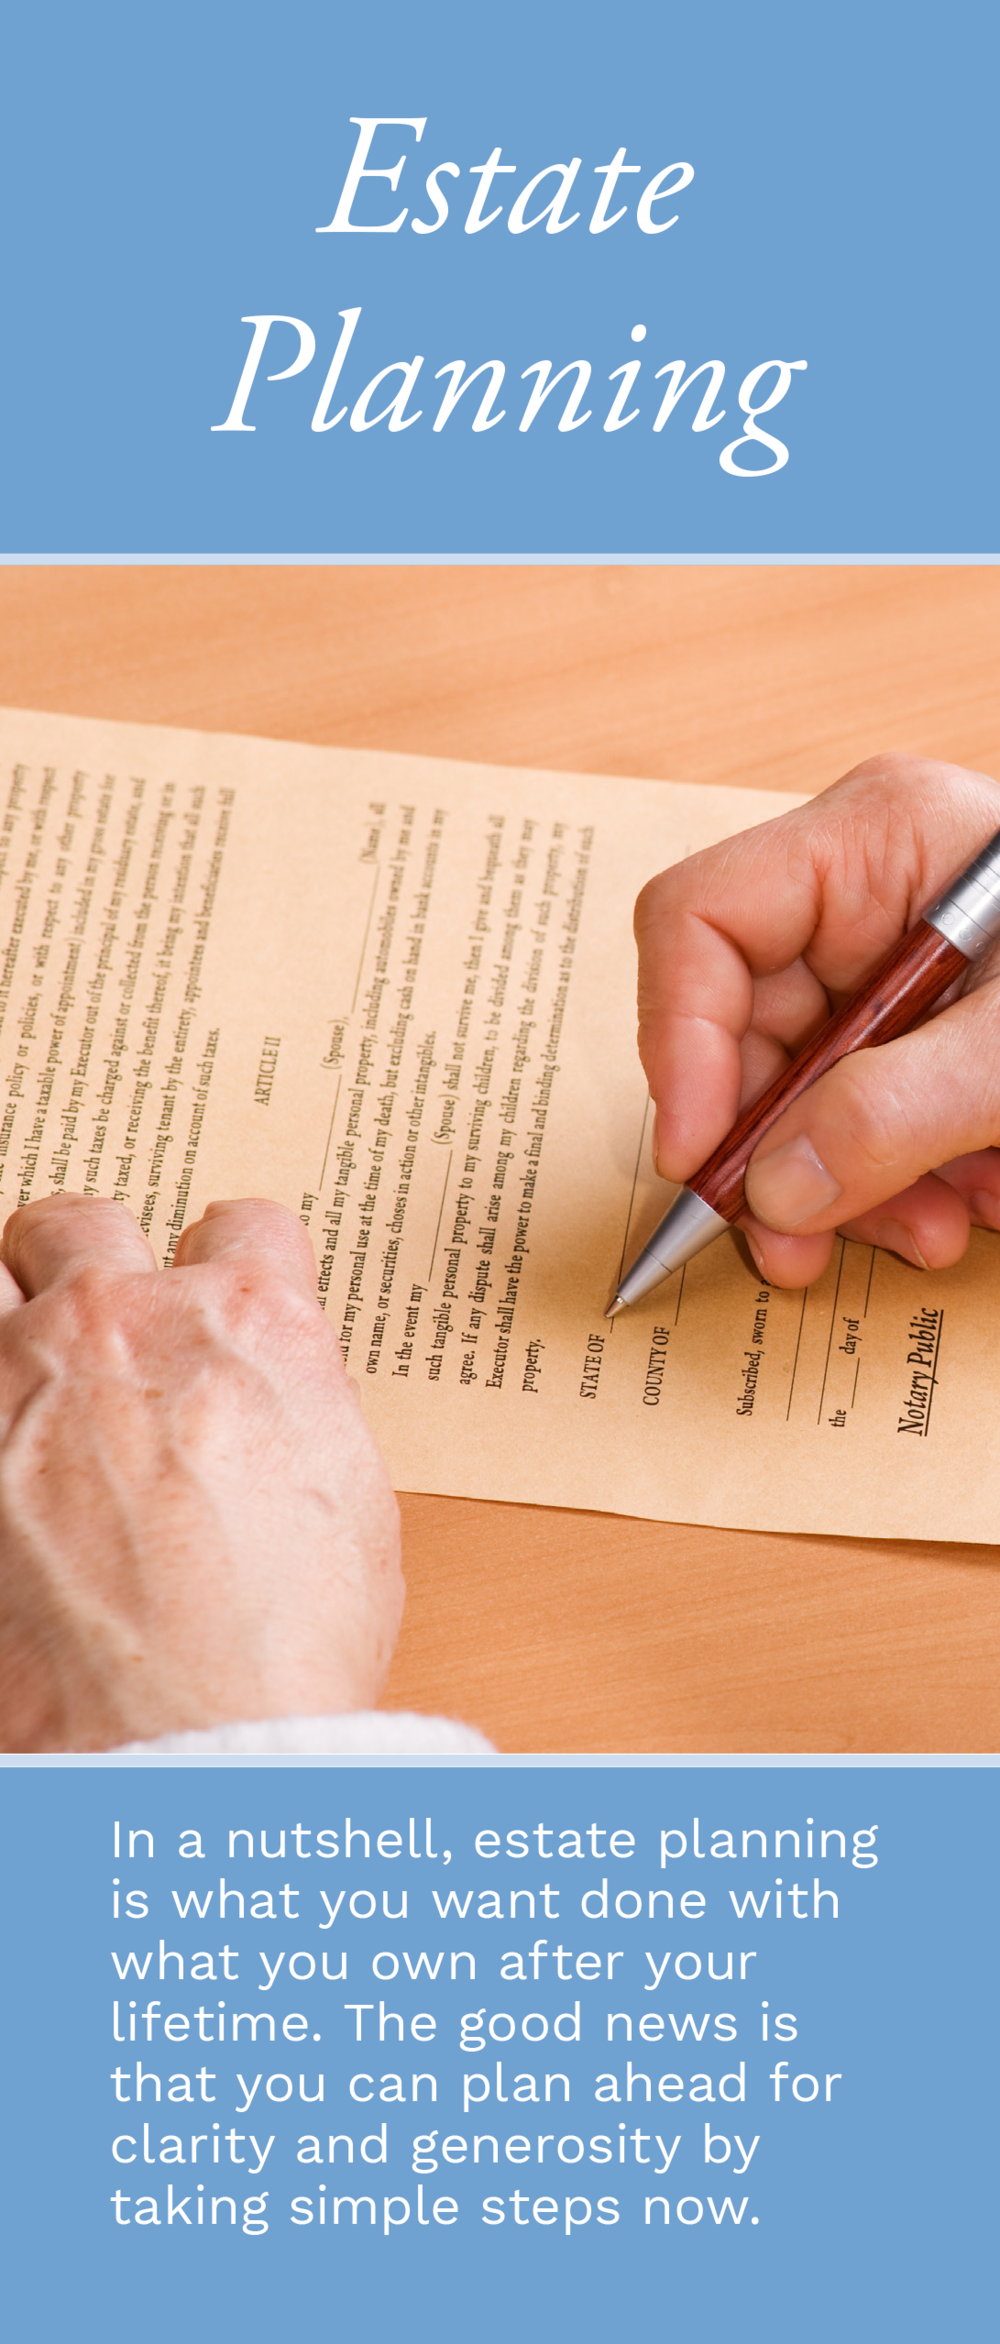 This brochure gives readers a list of questions to consider before meeting with an attorney to have a will written, and provides sample bequest language.